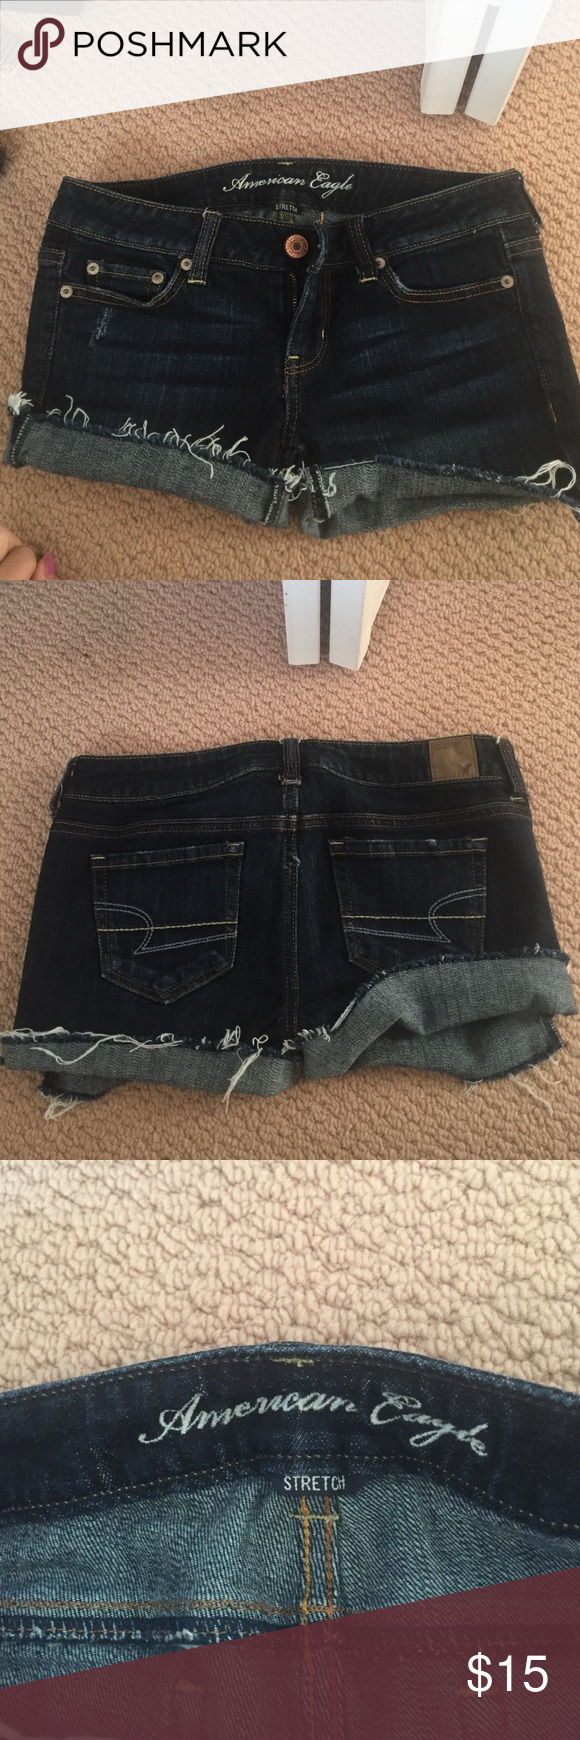 american eagle jean shorts american eagle shorts great condition!! American Eagle Outfitters Shorts Jean Shorts